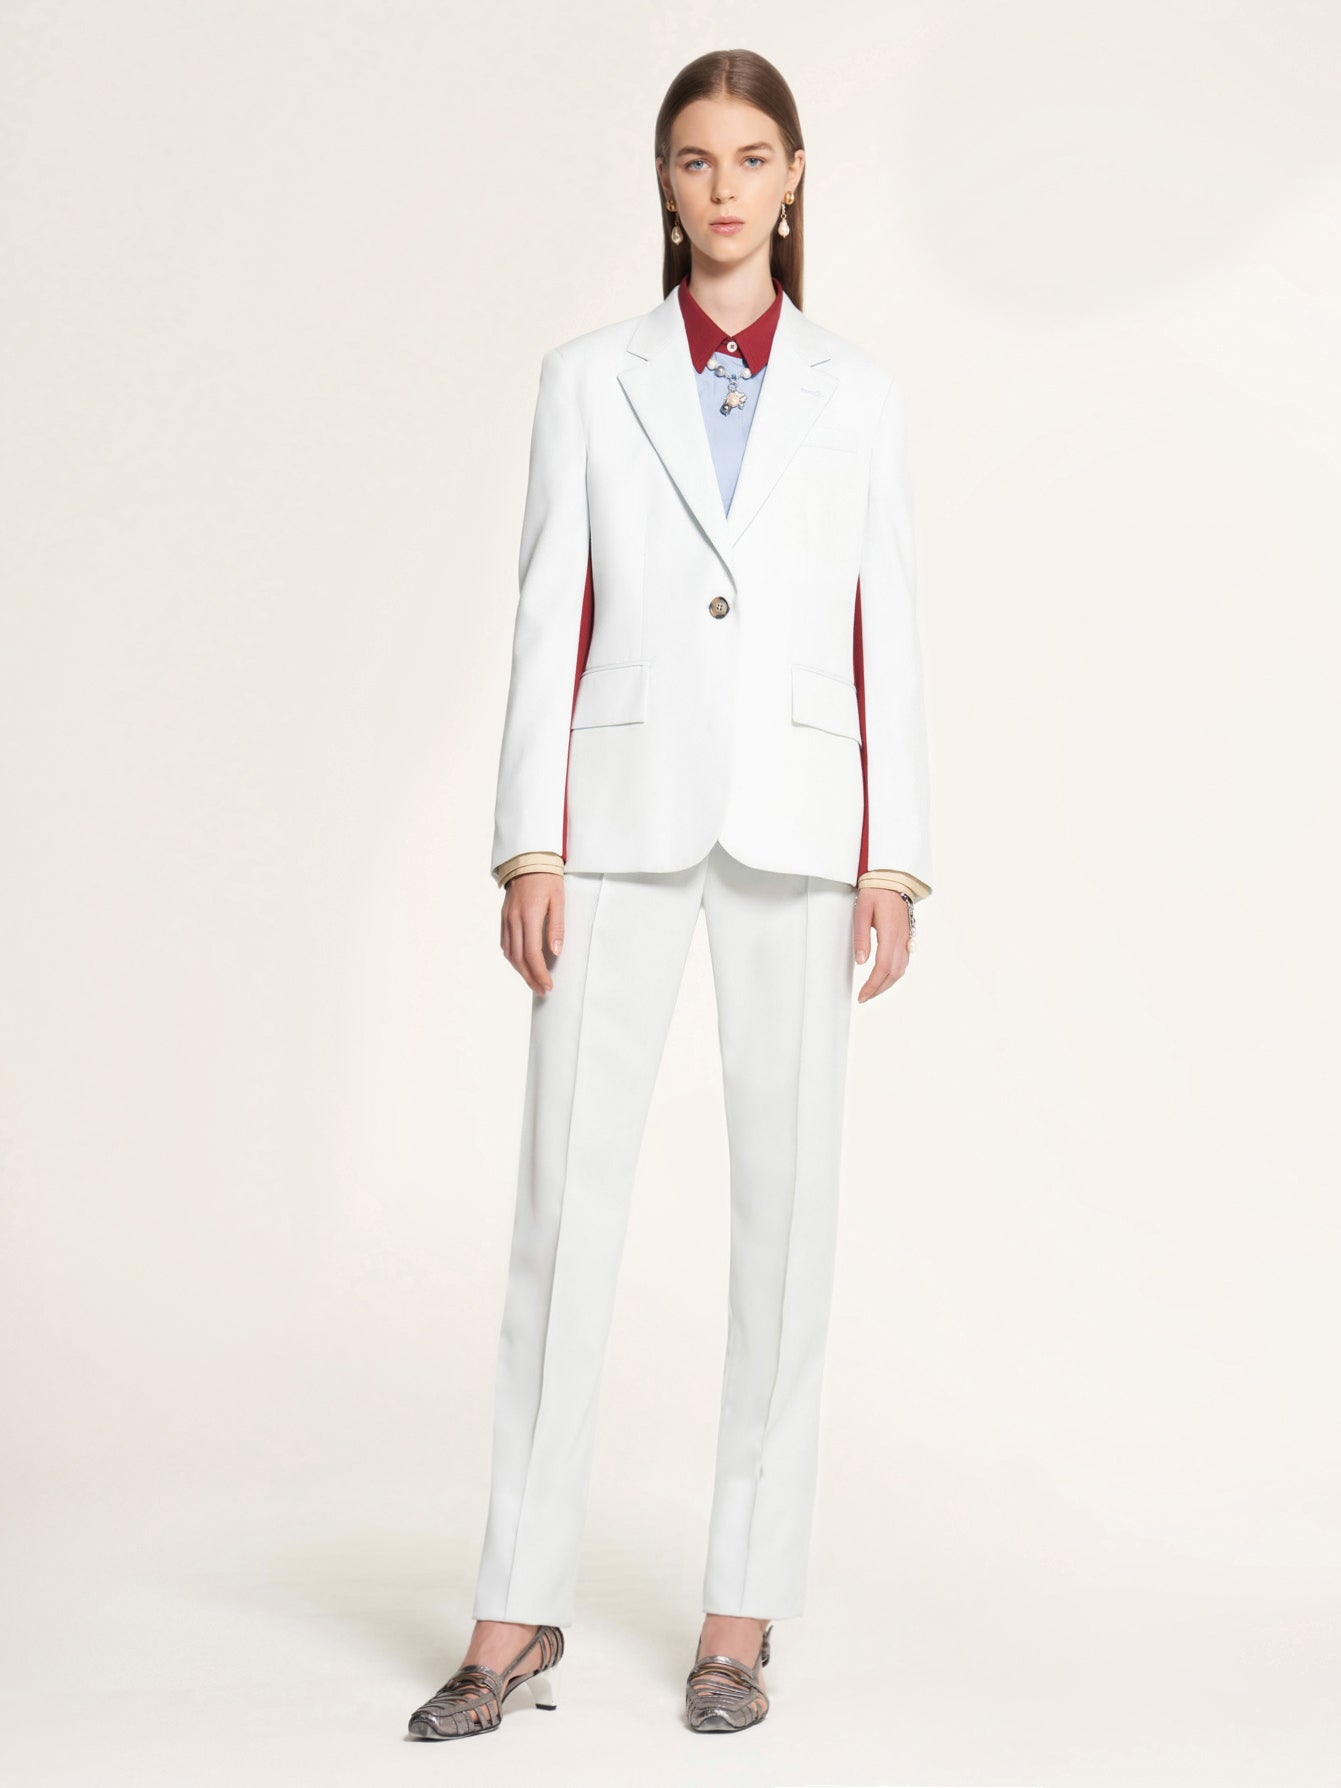 Marigold Blazer with White Contrast Detail